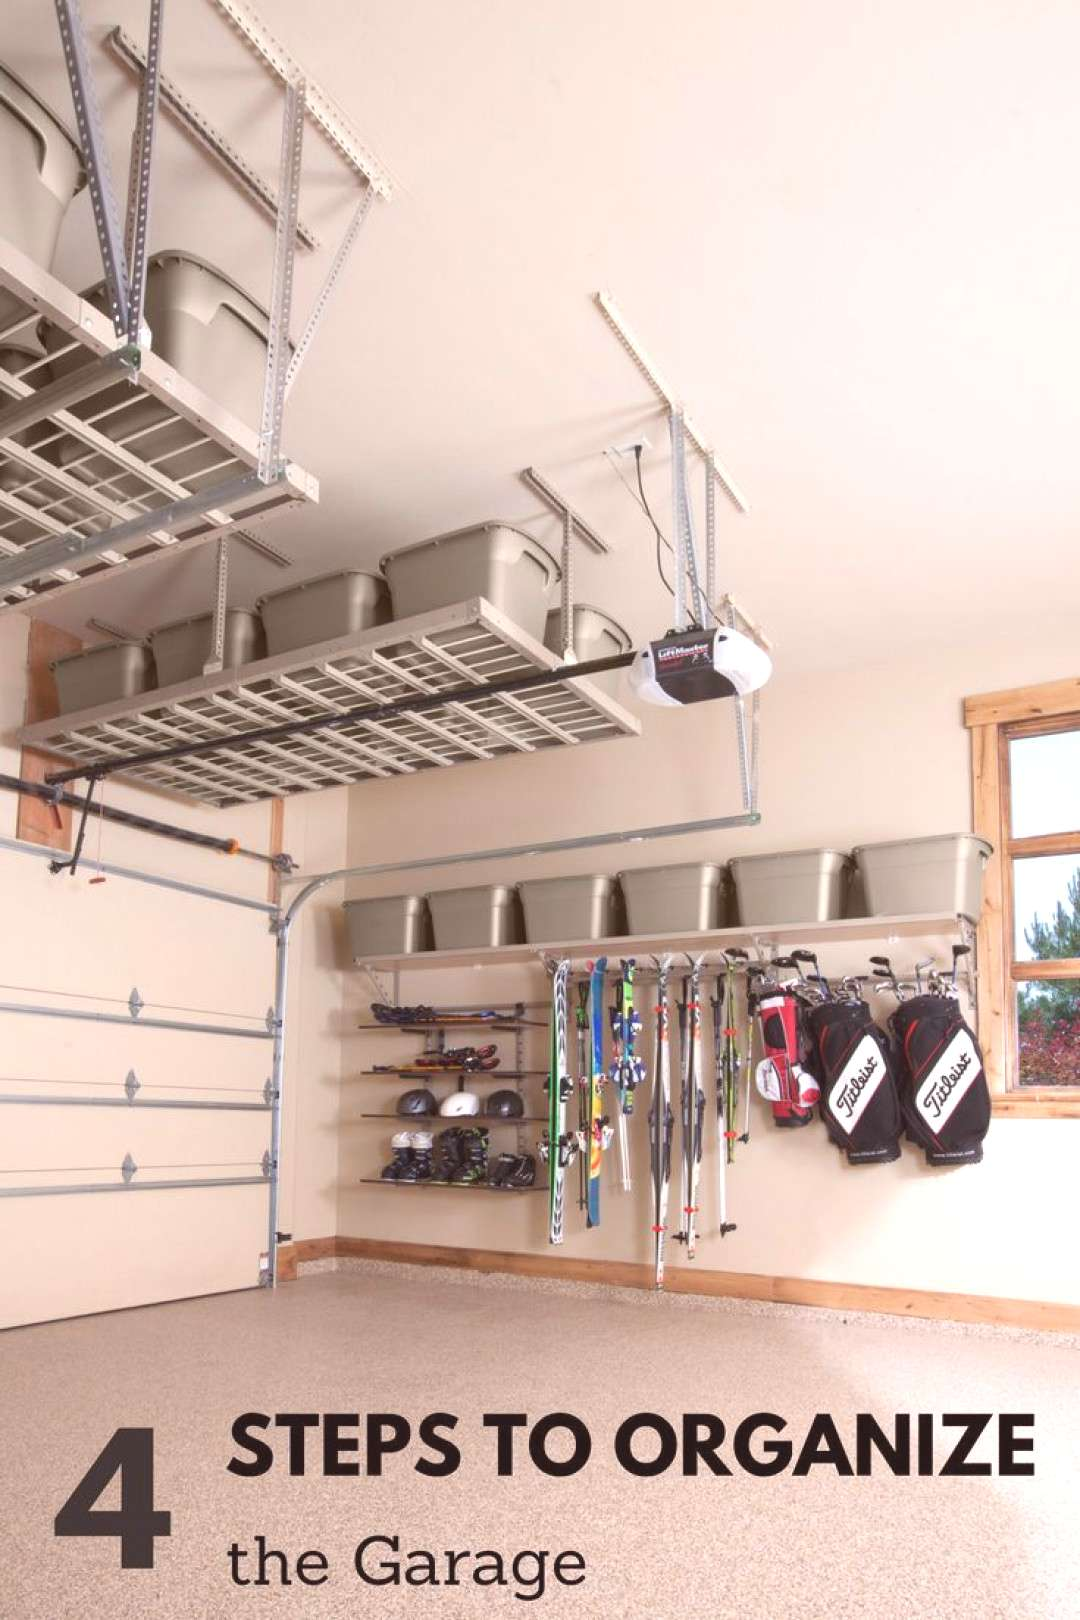 4 Steps for Organizing the Garage - An organized garage doesnt have to be so far away. Follow the